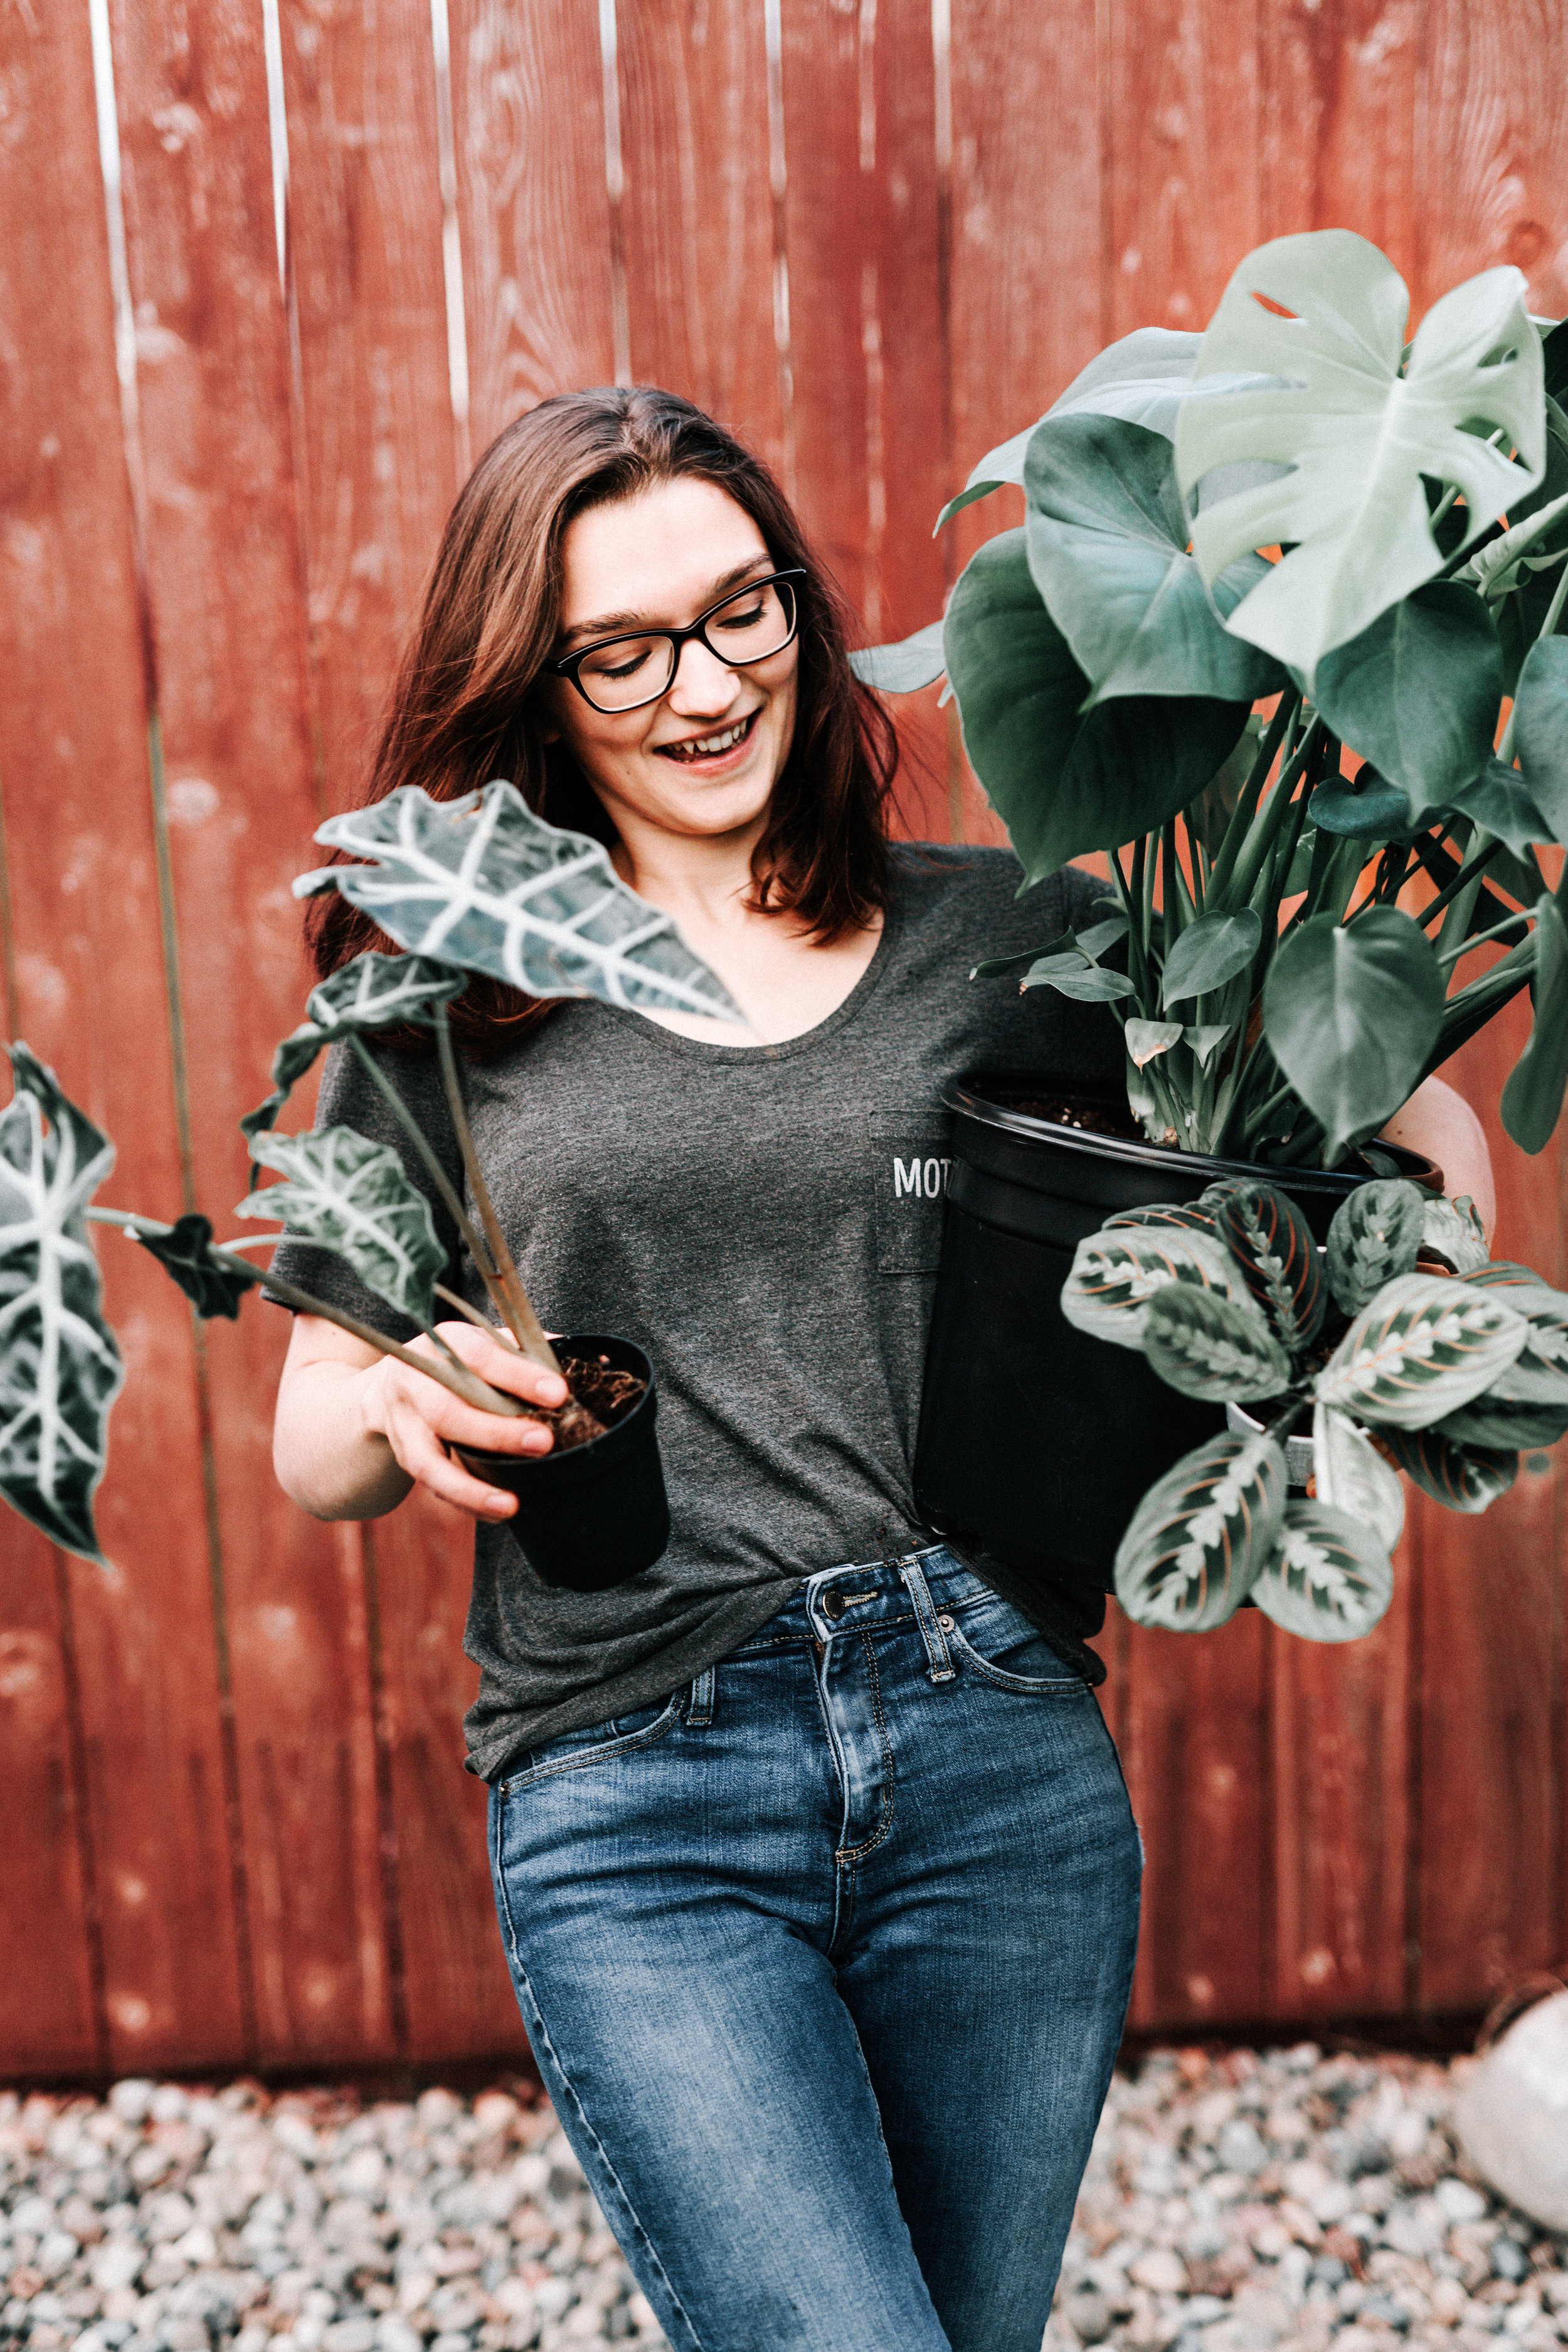 Hey there,My name is Dusty Hegge. - I am your houseplant instructor! I have had houseplants under my care since I was about 8 years old and I have learned so much since then. My goal is to help you get rid of plant shame and replace it with confidence, fun, and curiosity.I can't help but see the parallels between plant growth and human growth and I know that is by God's design.I am so ready to love on you, encourage GOOD growth, and teach you how to keep your houseplants alive.I can't wait to get planty with you!(And continue to make all the plant puns. Don't worry, they won't be dirty.)hahahahaha!See, I told you. I'm a hoot.The next five weeks are going to be incredible!